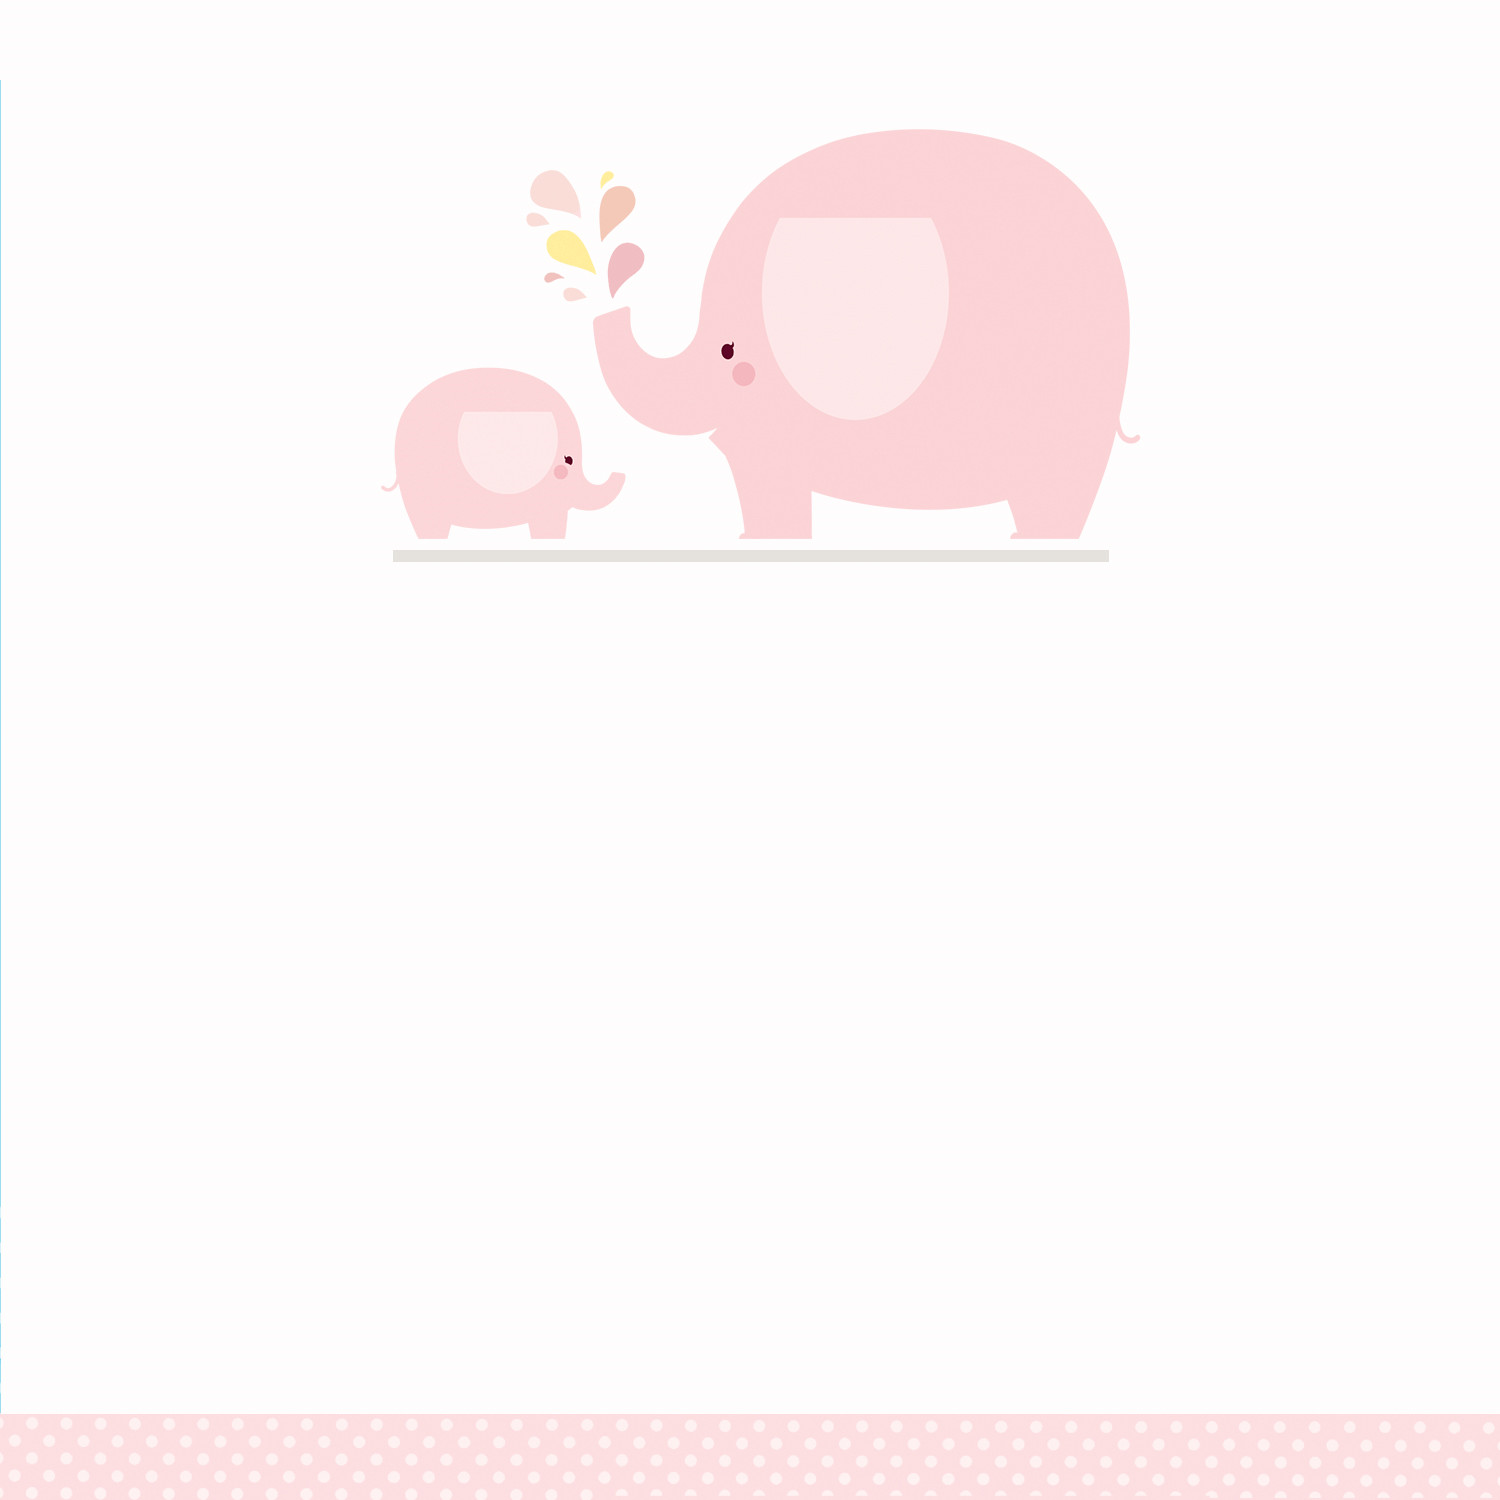 Elephant Baby Shower Invitation Templates Pink Baby Elephant Free Printable Baby Shower Invitation